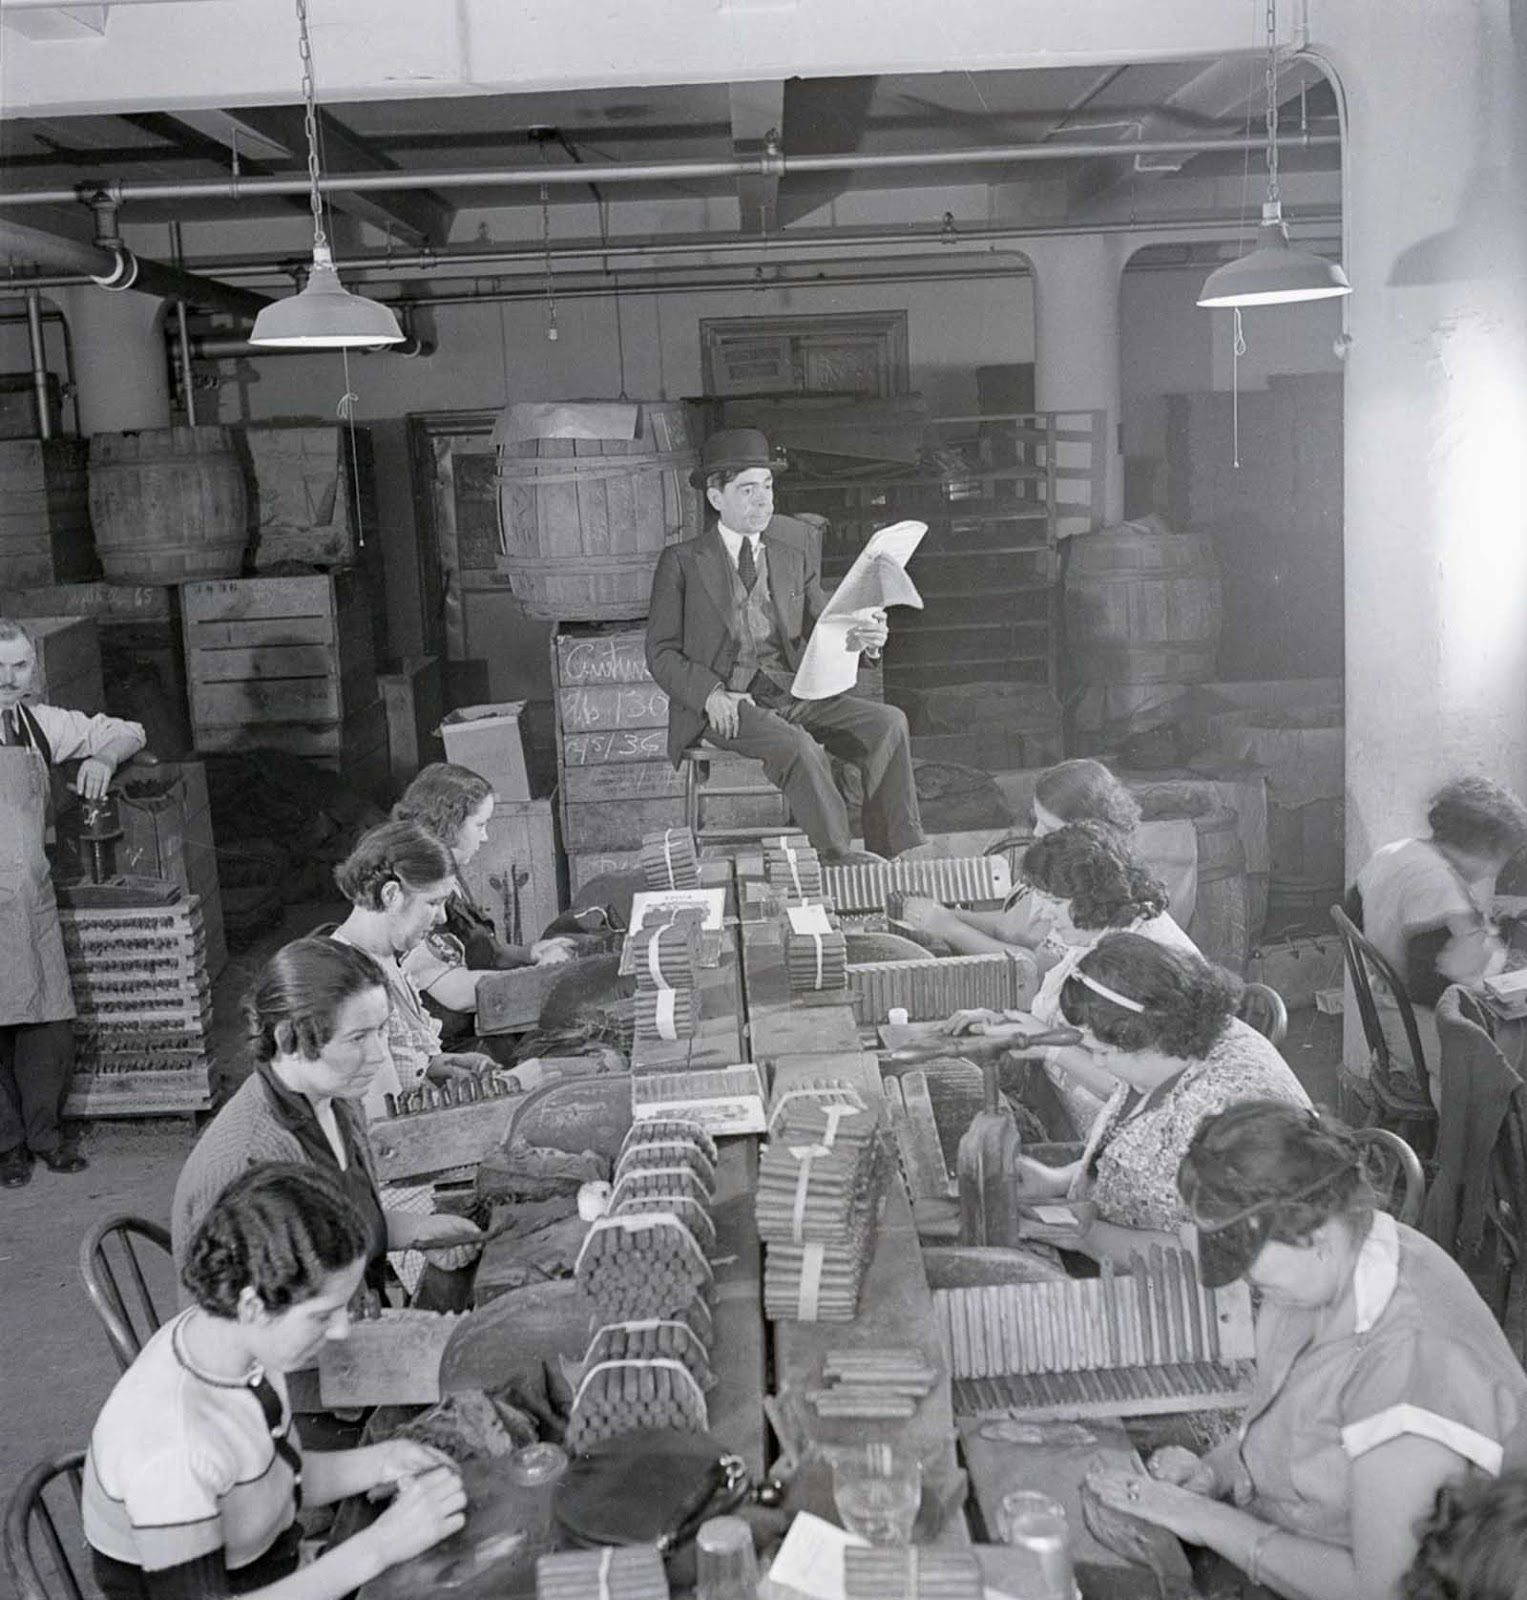 A lector reads a newspaper to workers in a cigar factory. 1900s.